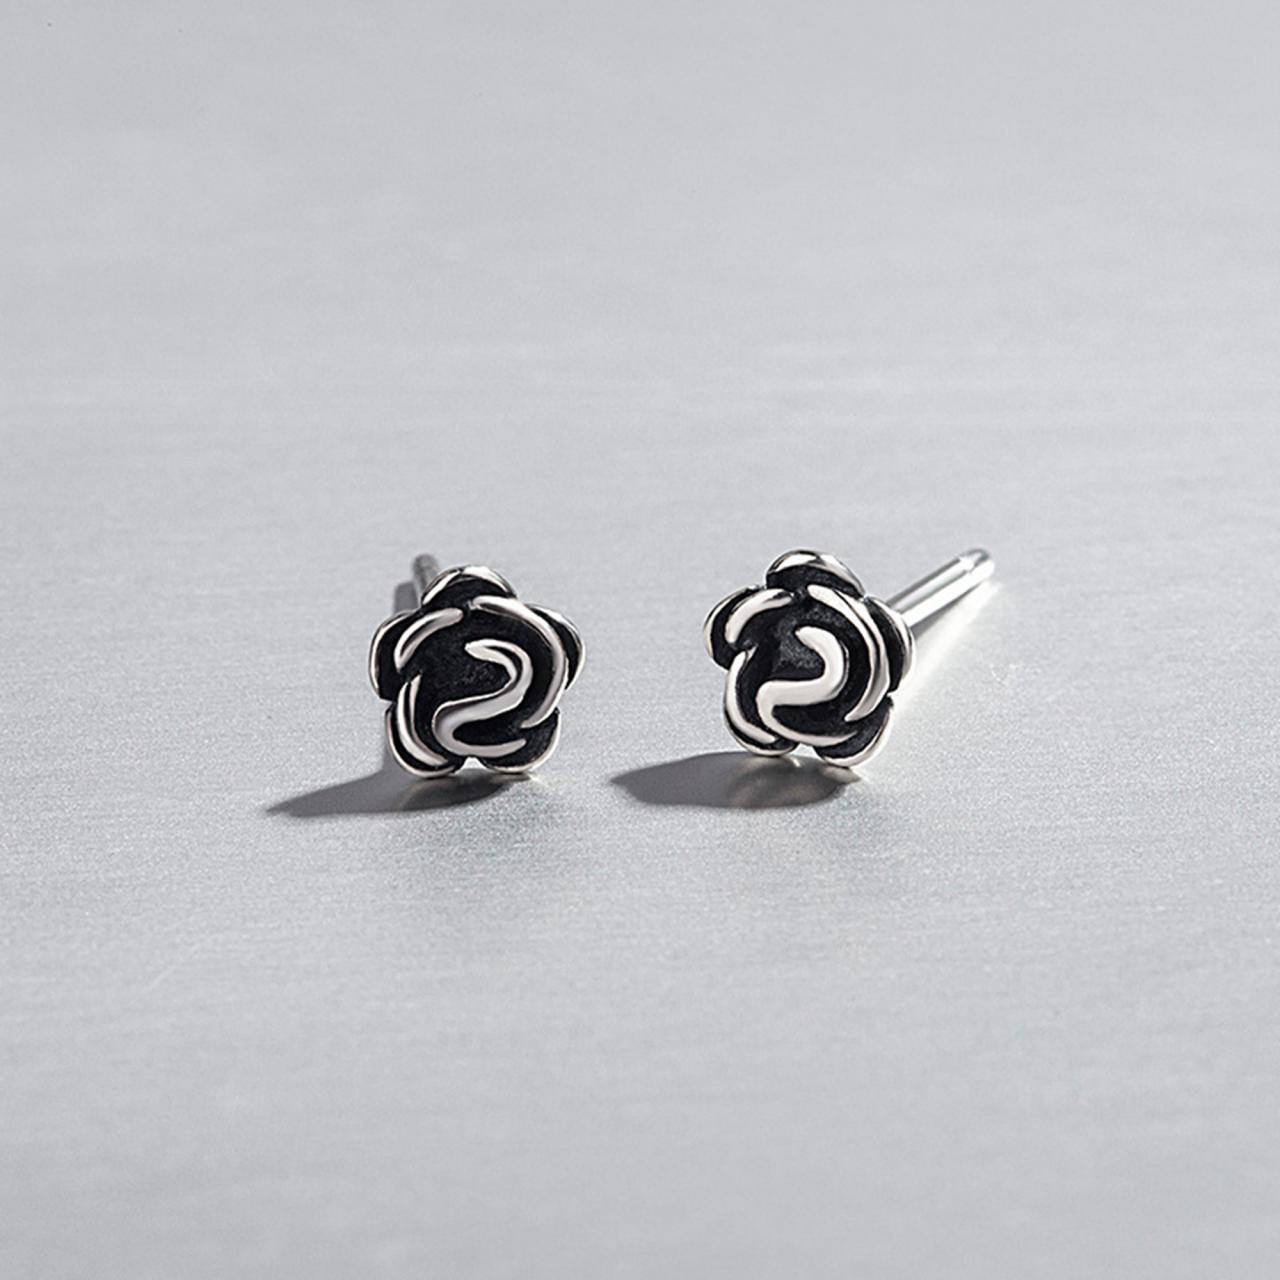 Silver Flower Ear Studs, Post Earrings, Women Earrings, Gift for Her